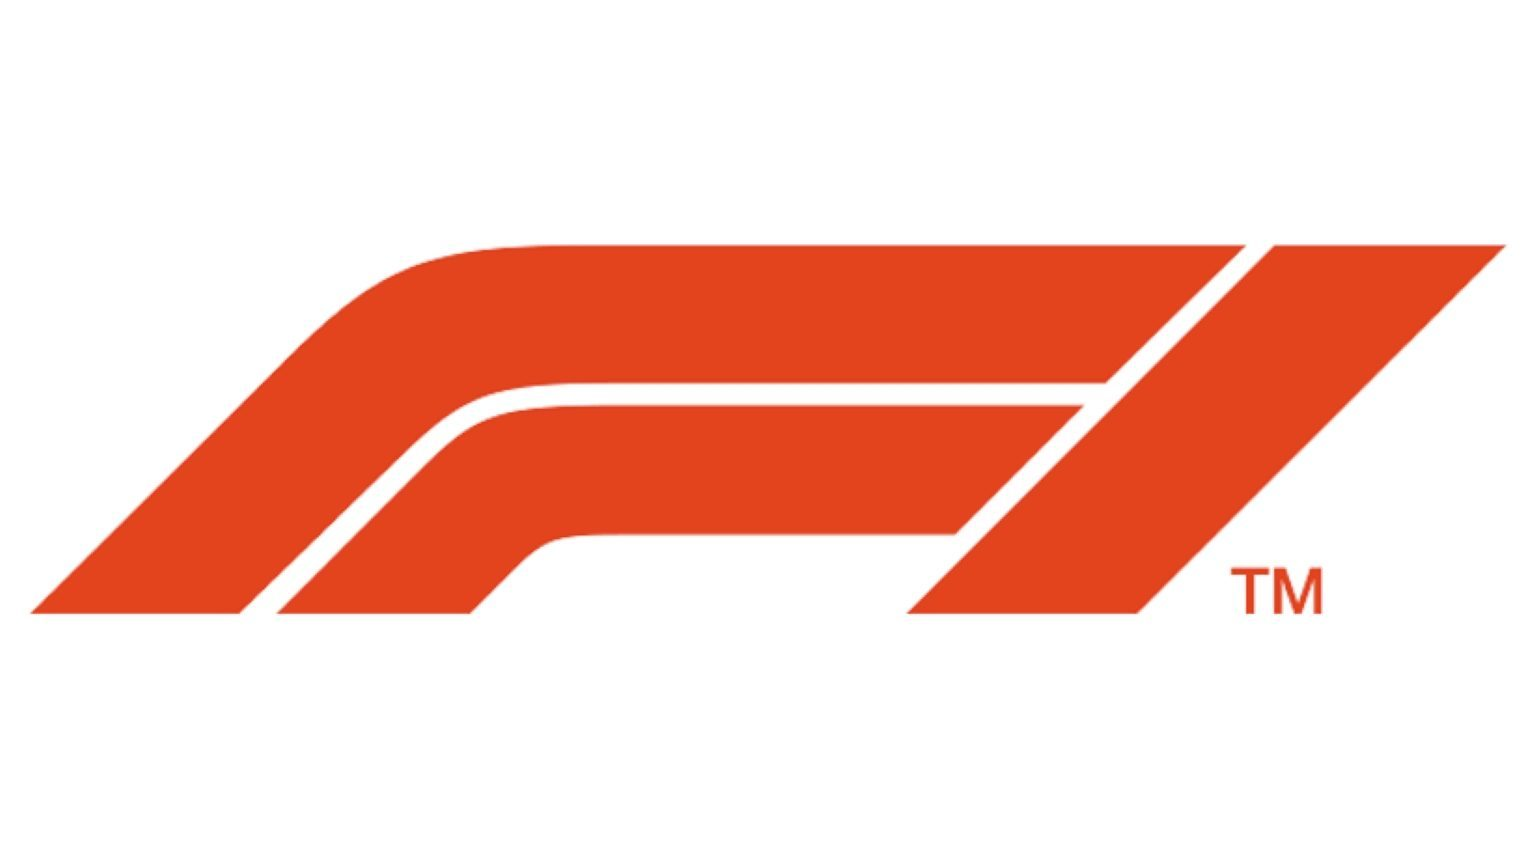 Everything you need to know about F1 TV: Price, content, features and more